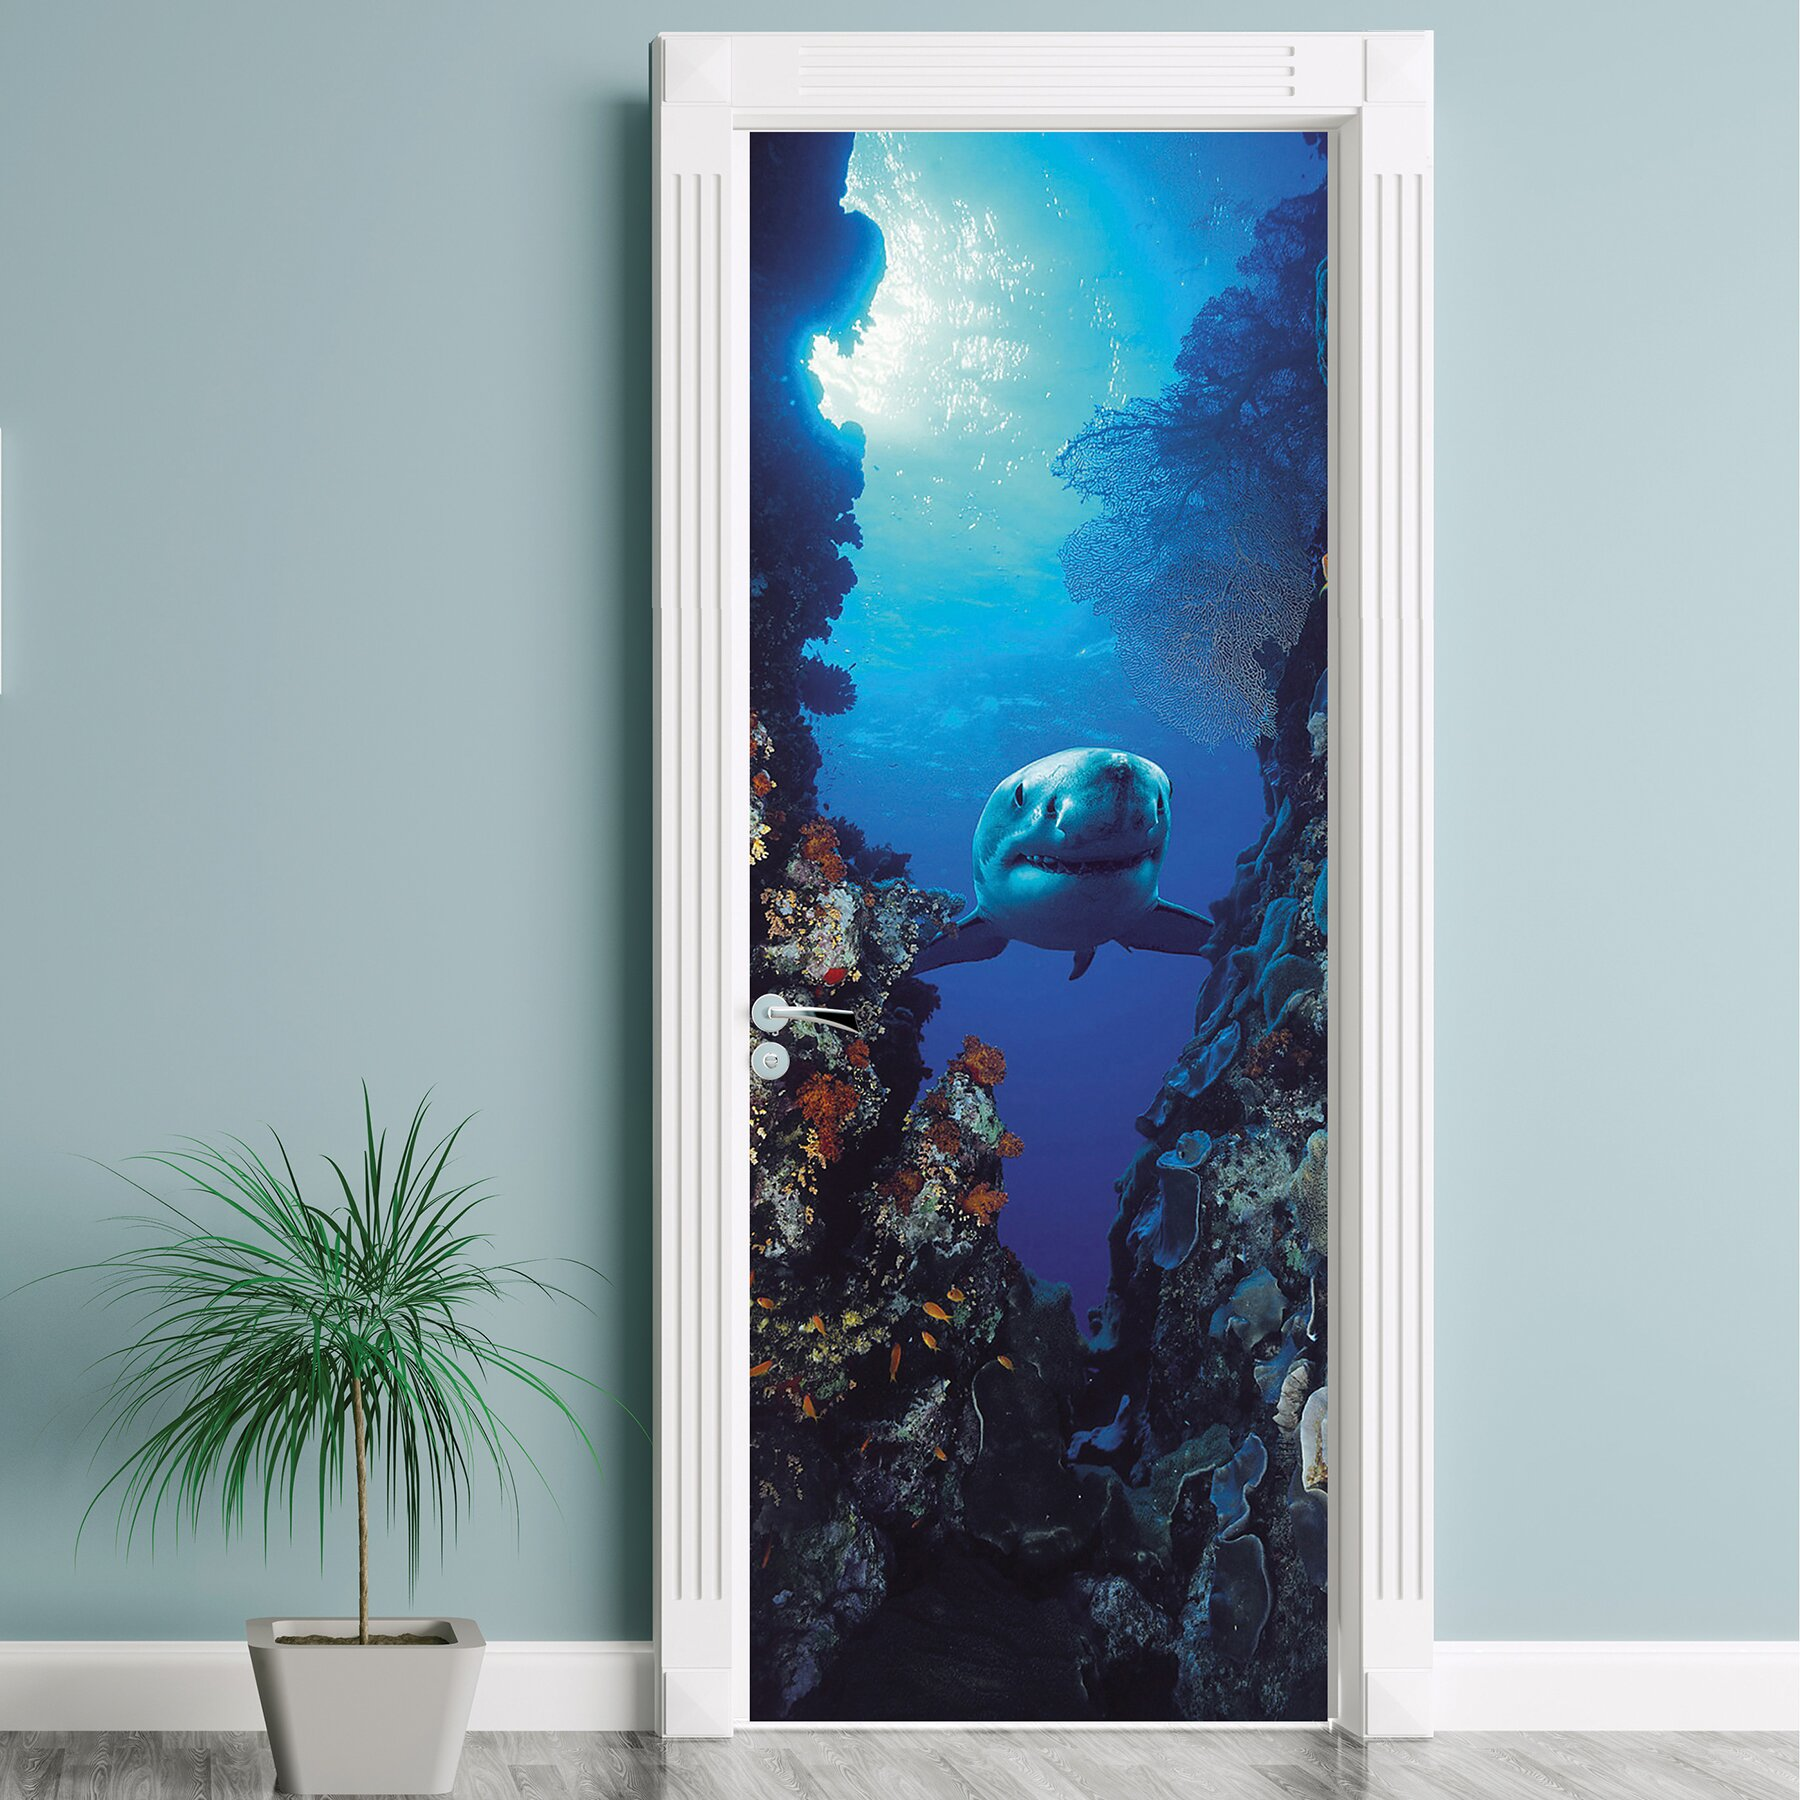 Brewster home fashions komar shark wall mural reviews for Brewster home fashions komar wall mural